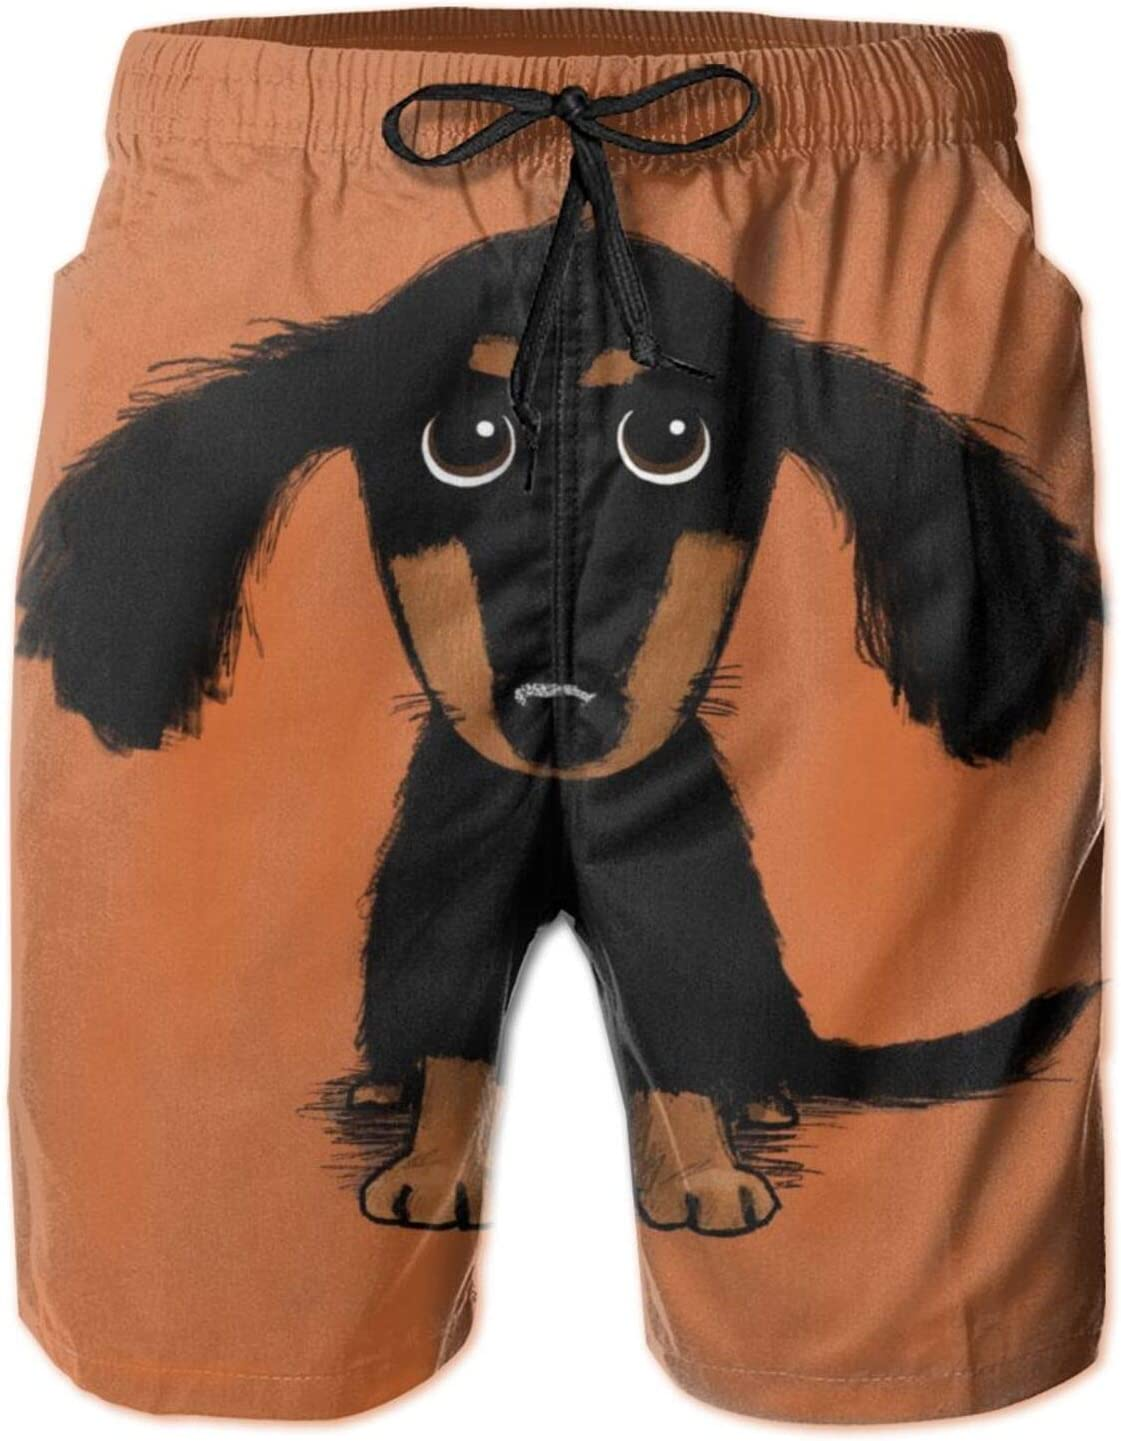 SWEET TANG Mens Beach Board Shorts Swim Trunks, Wiener Long Haired Dachshund Dog Weiner Funny Cute Sports Running Swim Board Shorts with Mesh Lining and Pocket for Beach Sports Running